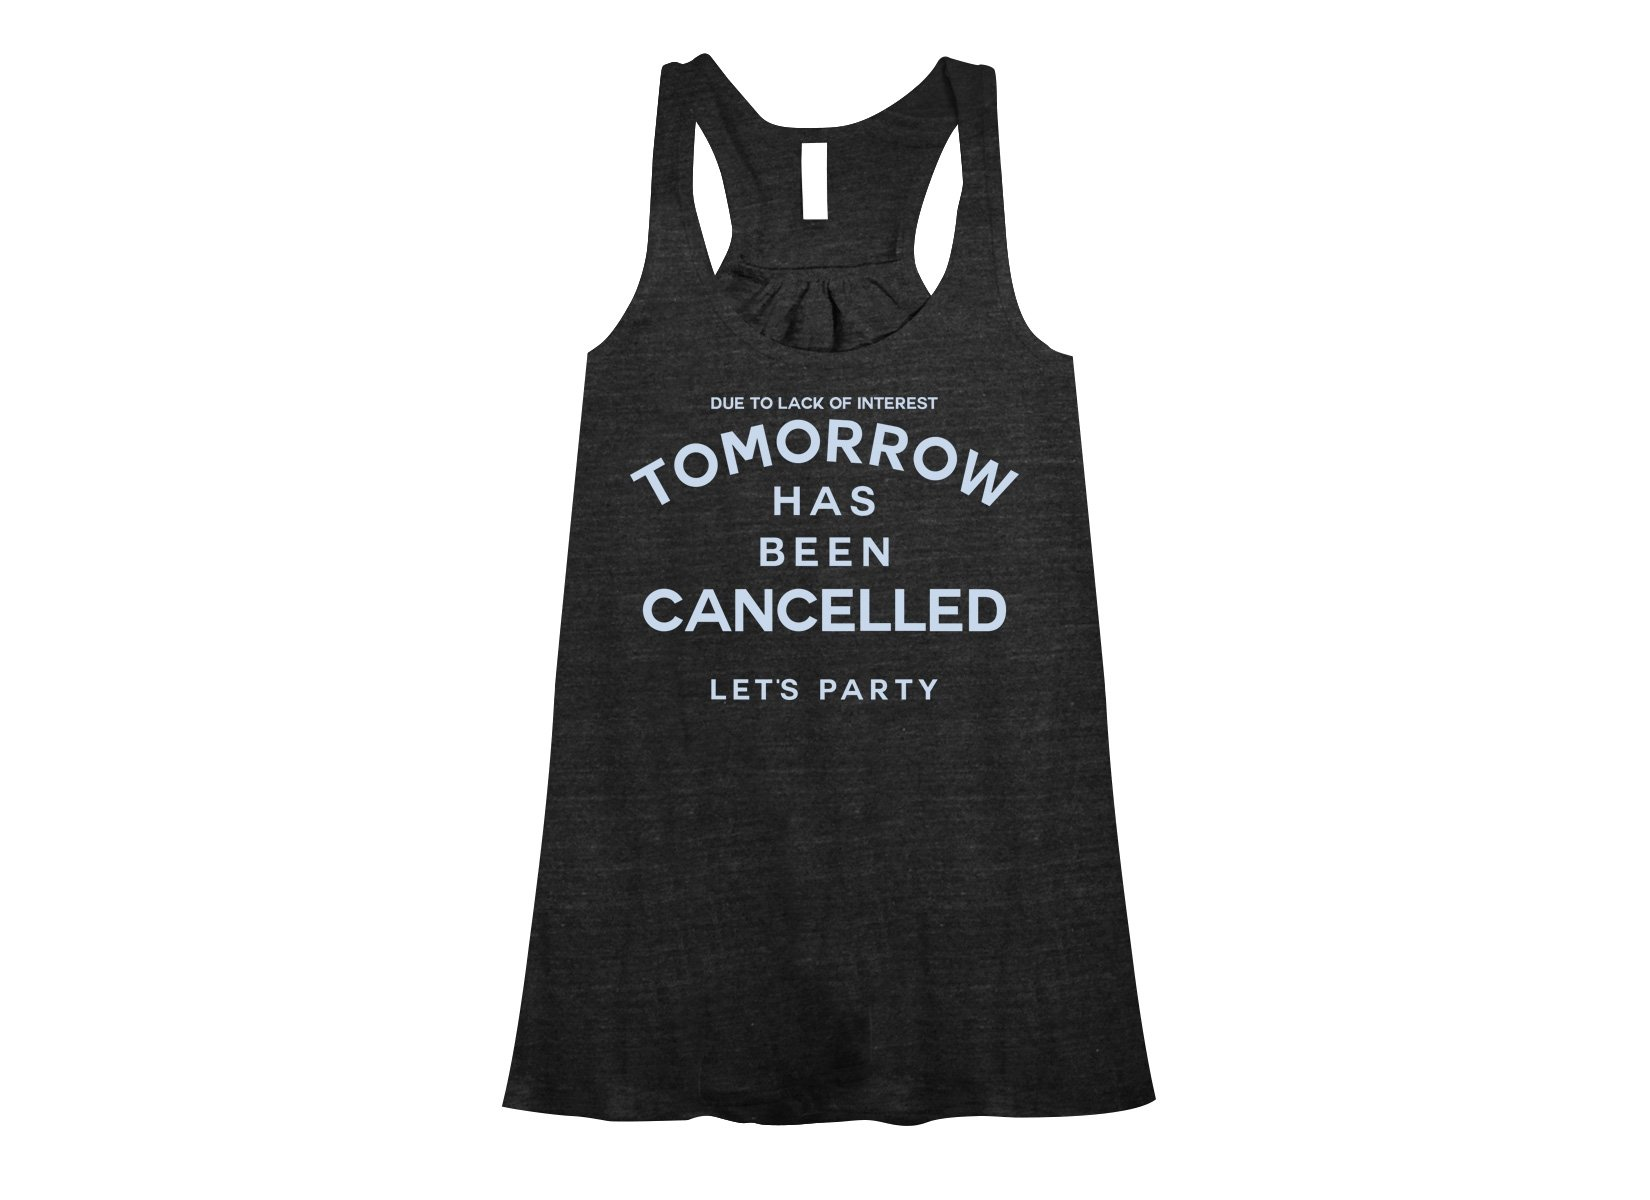 Tomorrow Has Been Cancelled on Womens Tanks T-Shirt